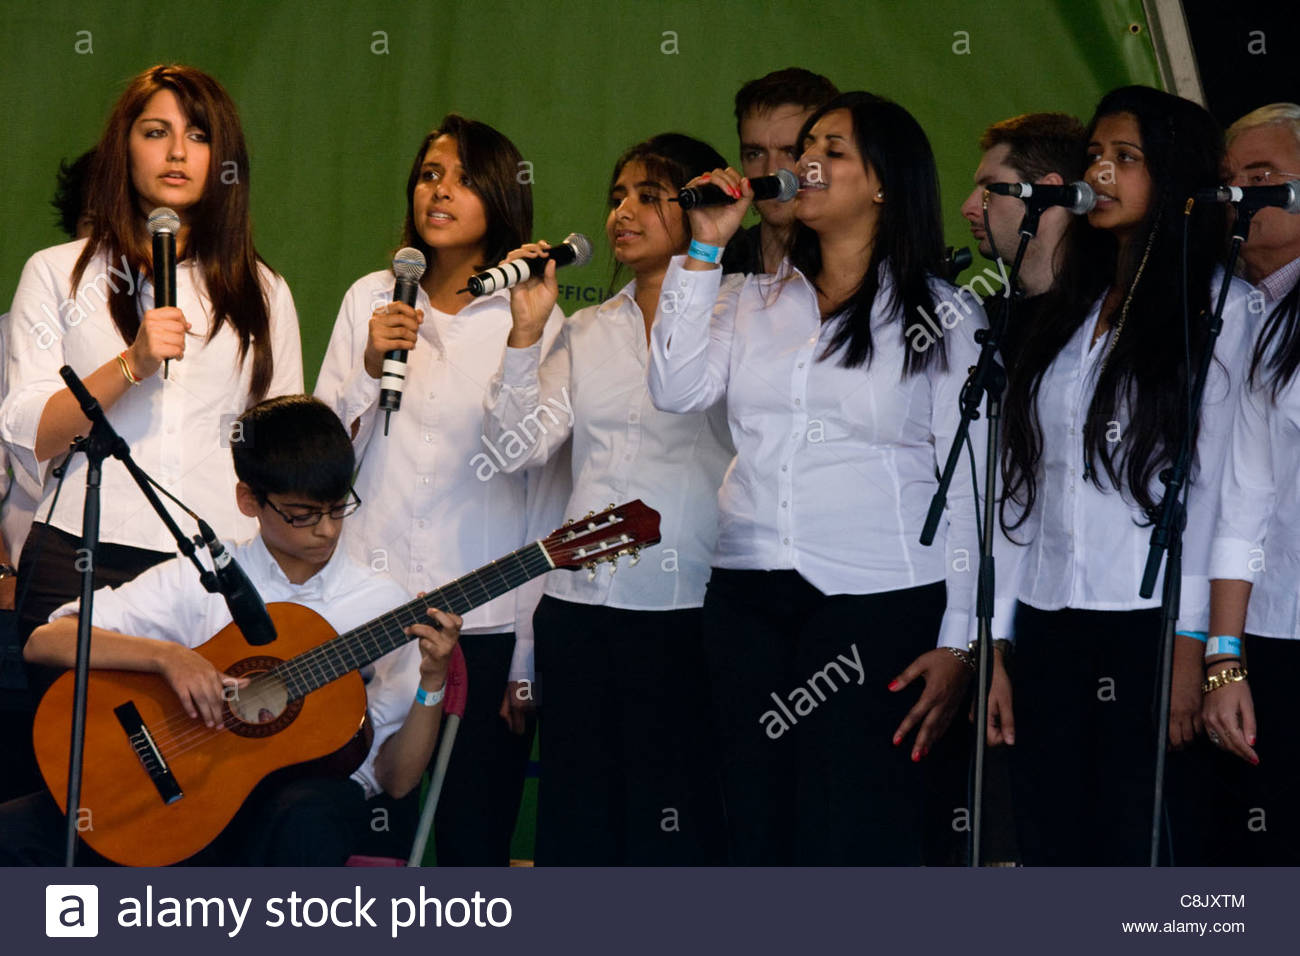 Londoners: Celebrating the Muslim festival of Eid, marking the end of Ramadan, in Trafalgar Square, London - Stock Image